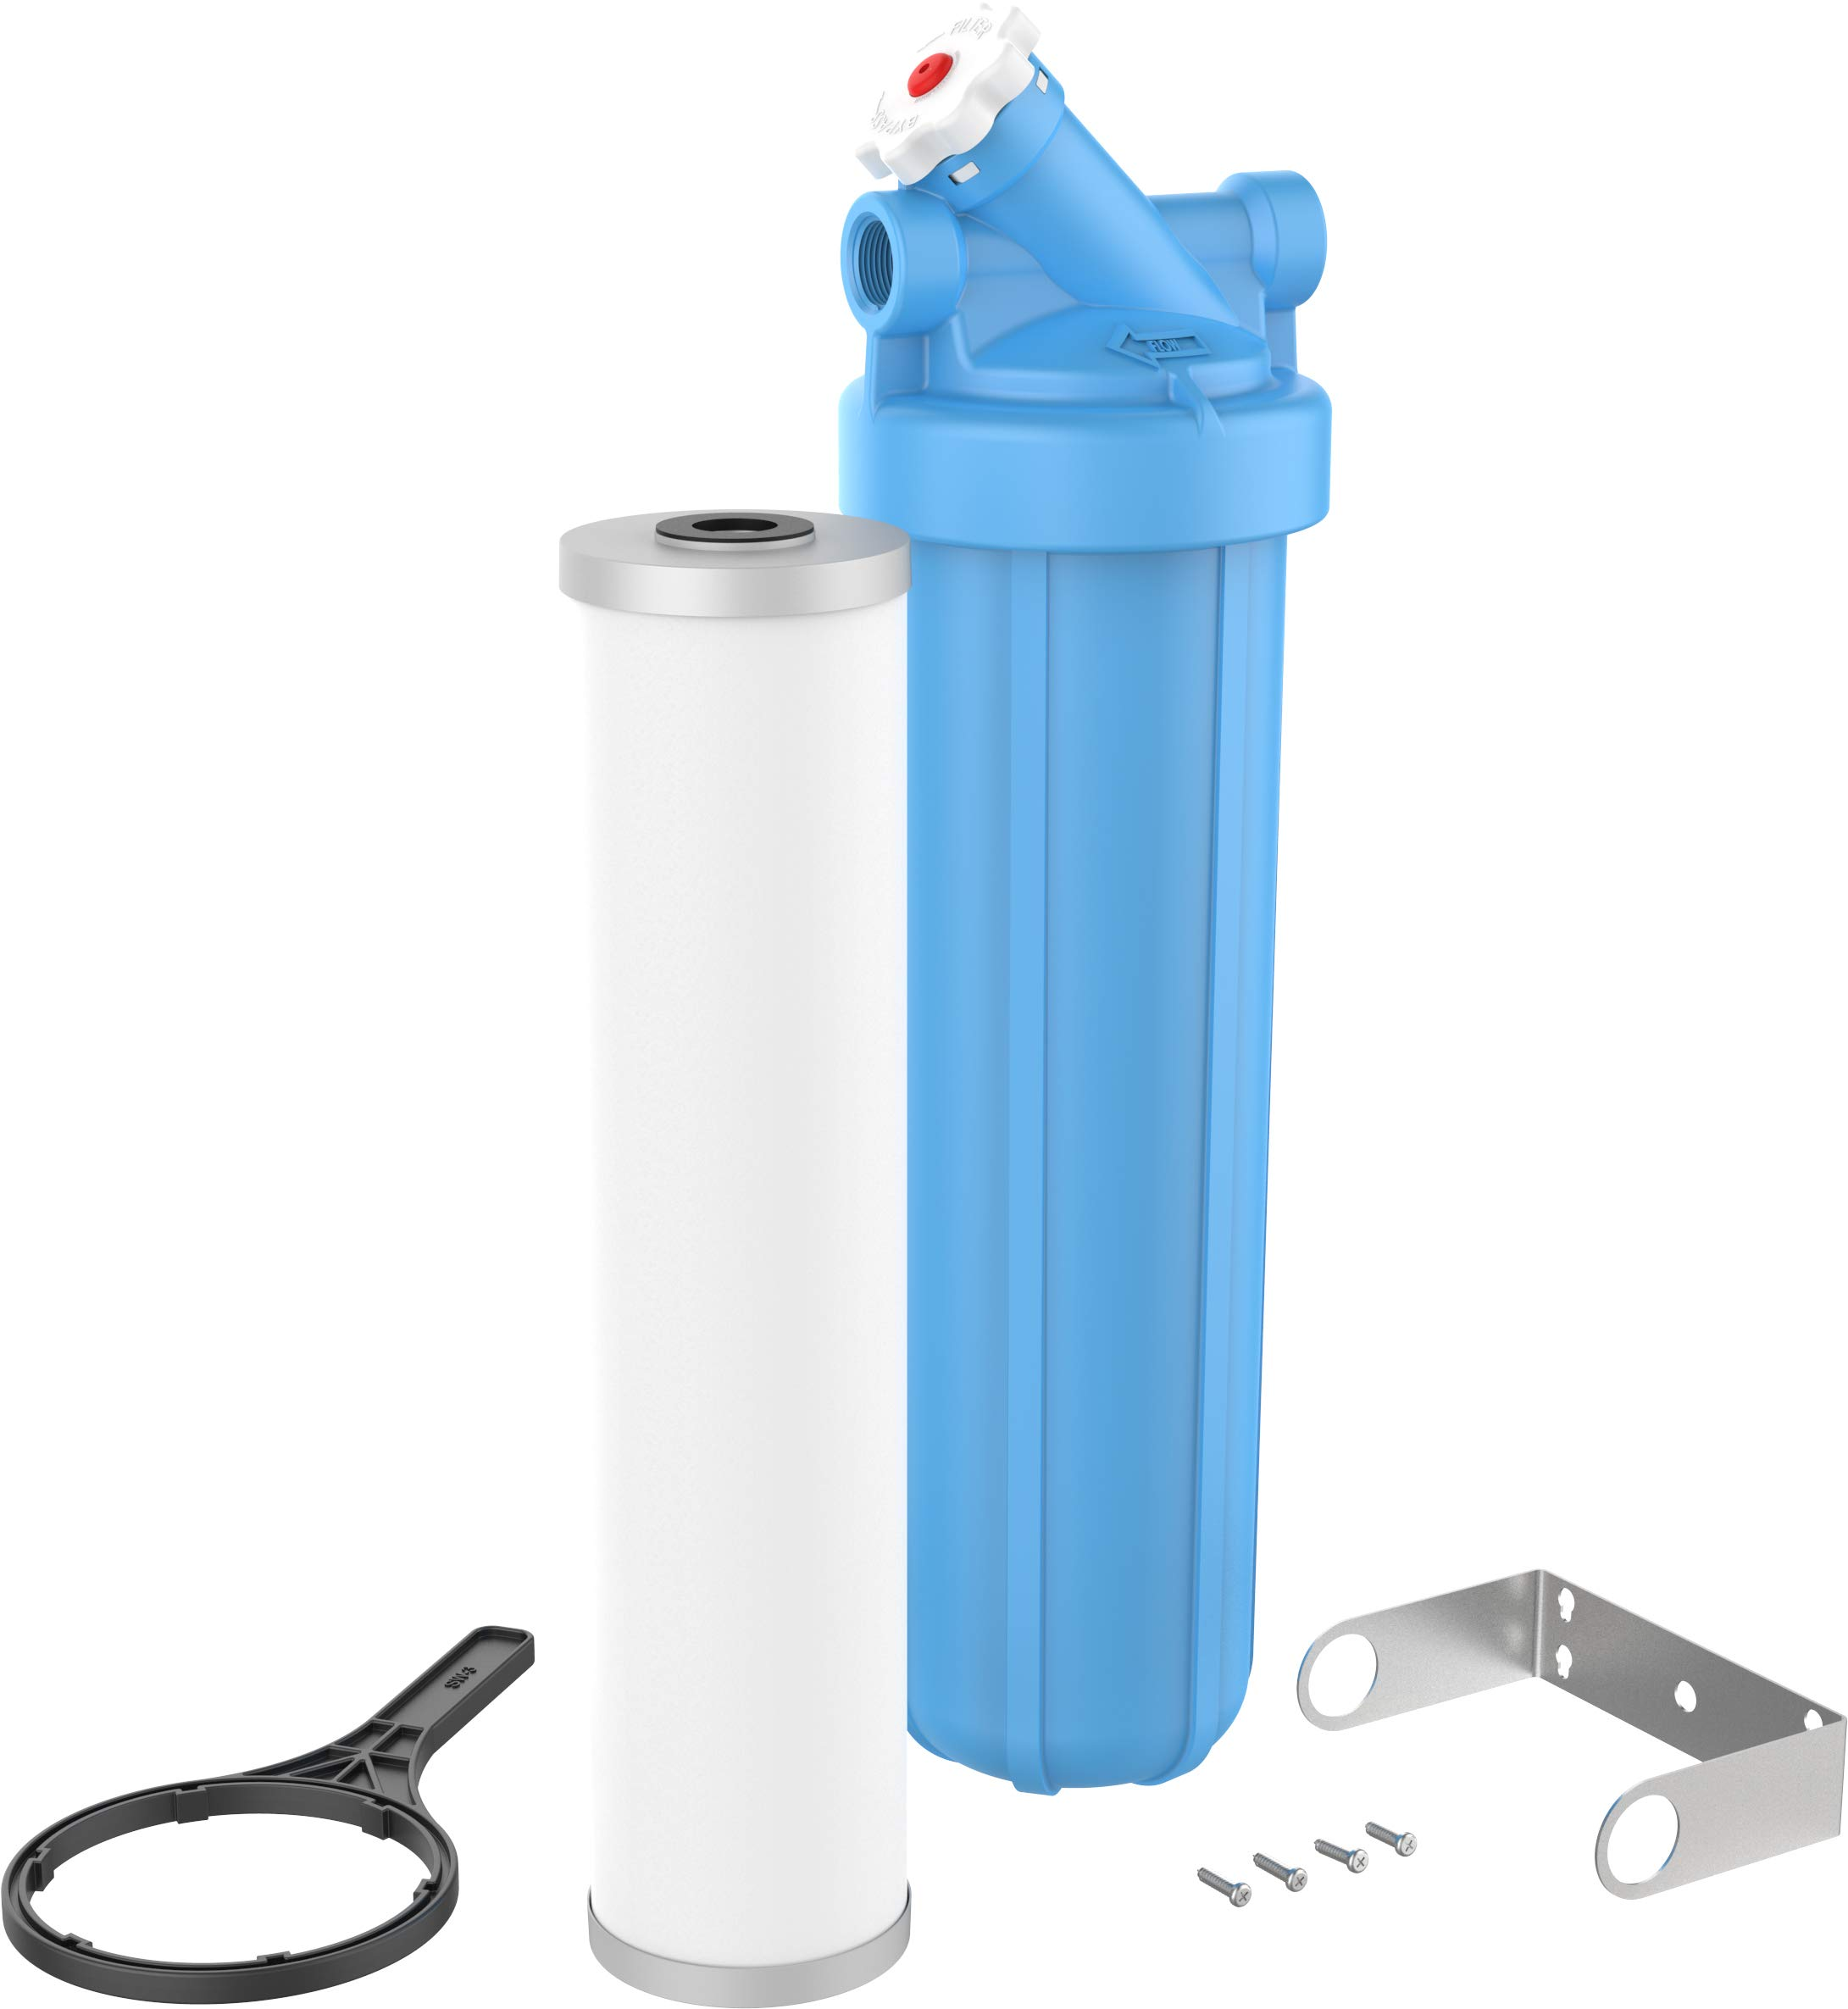 OMNIFilter PB55-S-S18 Heavy Duty 20'', Lead and Cyst Water Filter System with PB55-20-SC-S18 0.5 Micron Cartridge, Blue by OMNIFilter